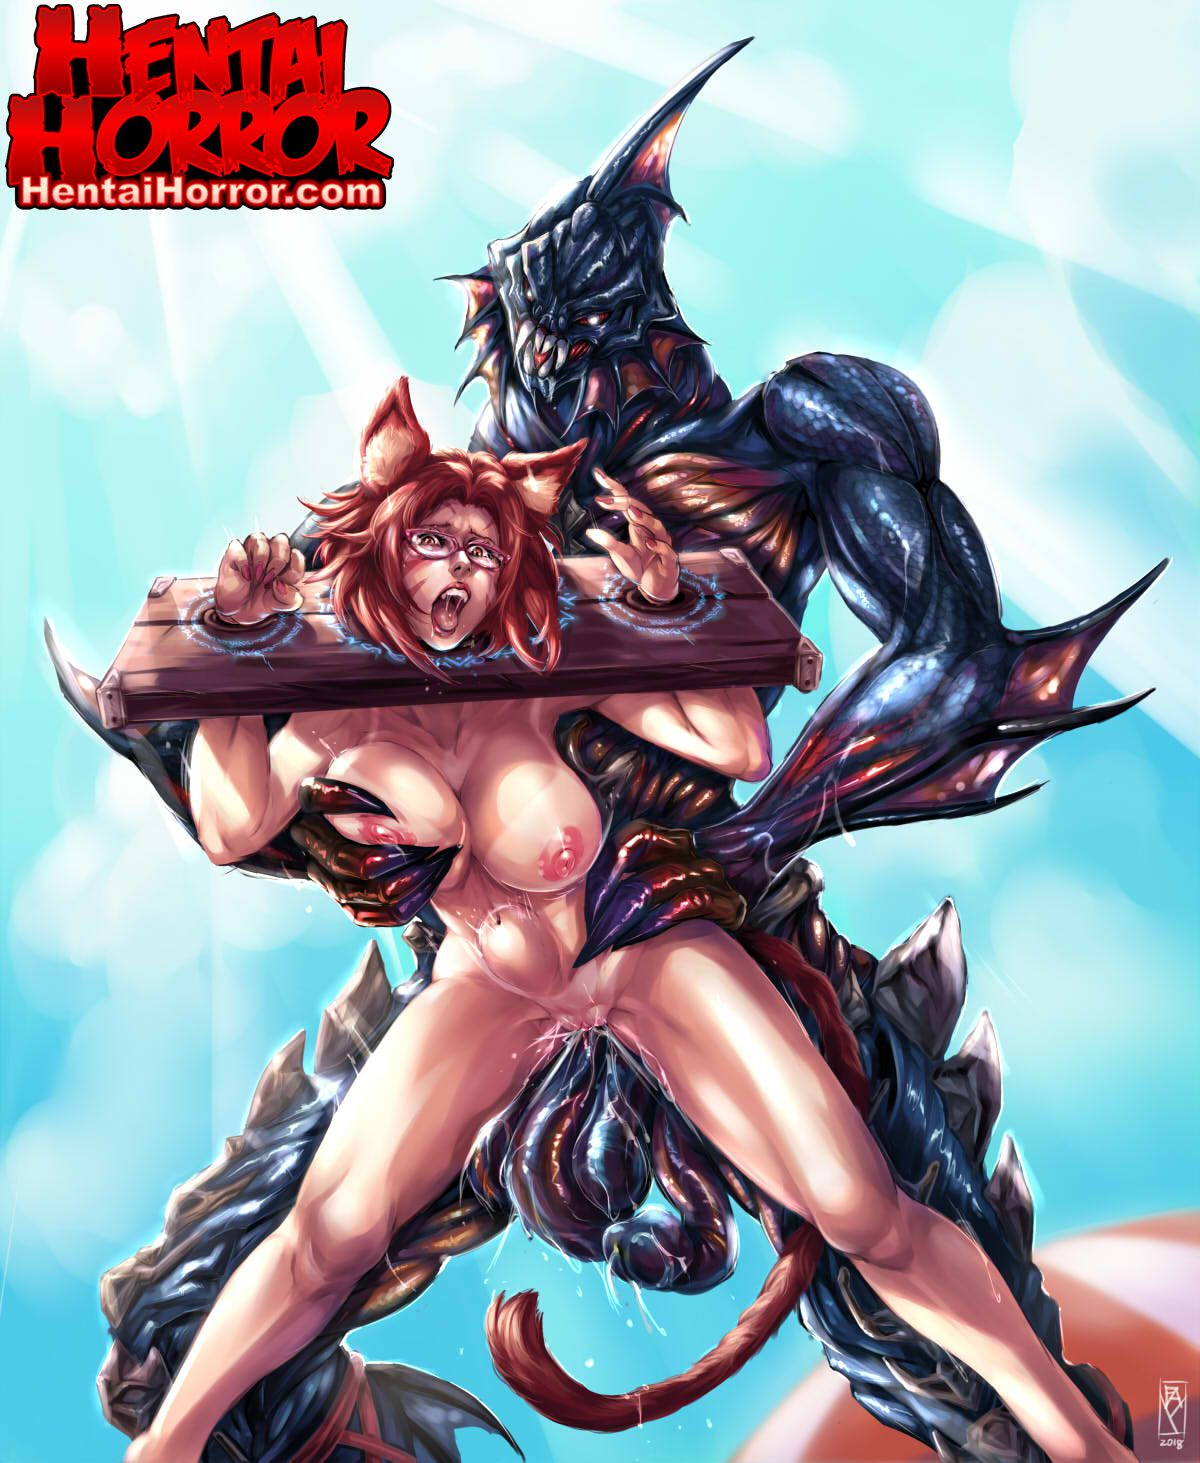 hentai nekocatgirl monstercock demon cartoonporn